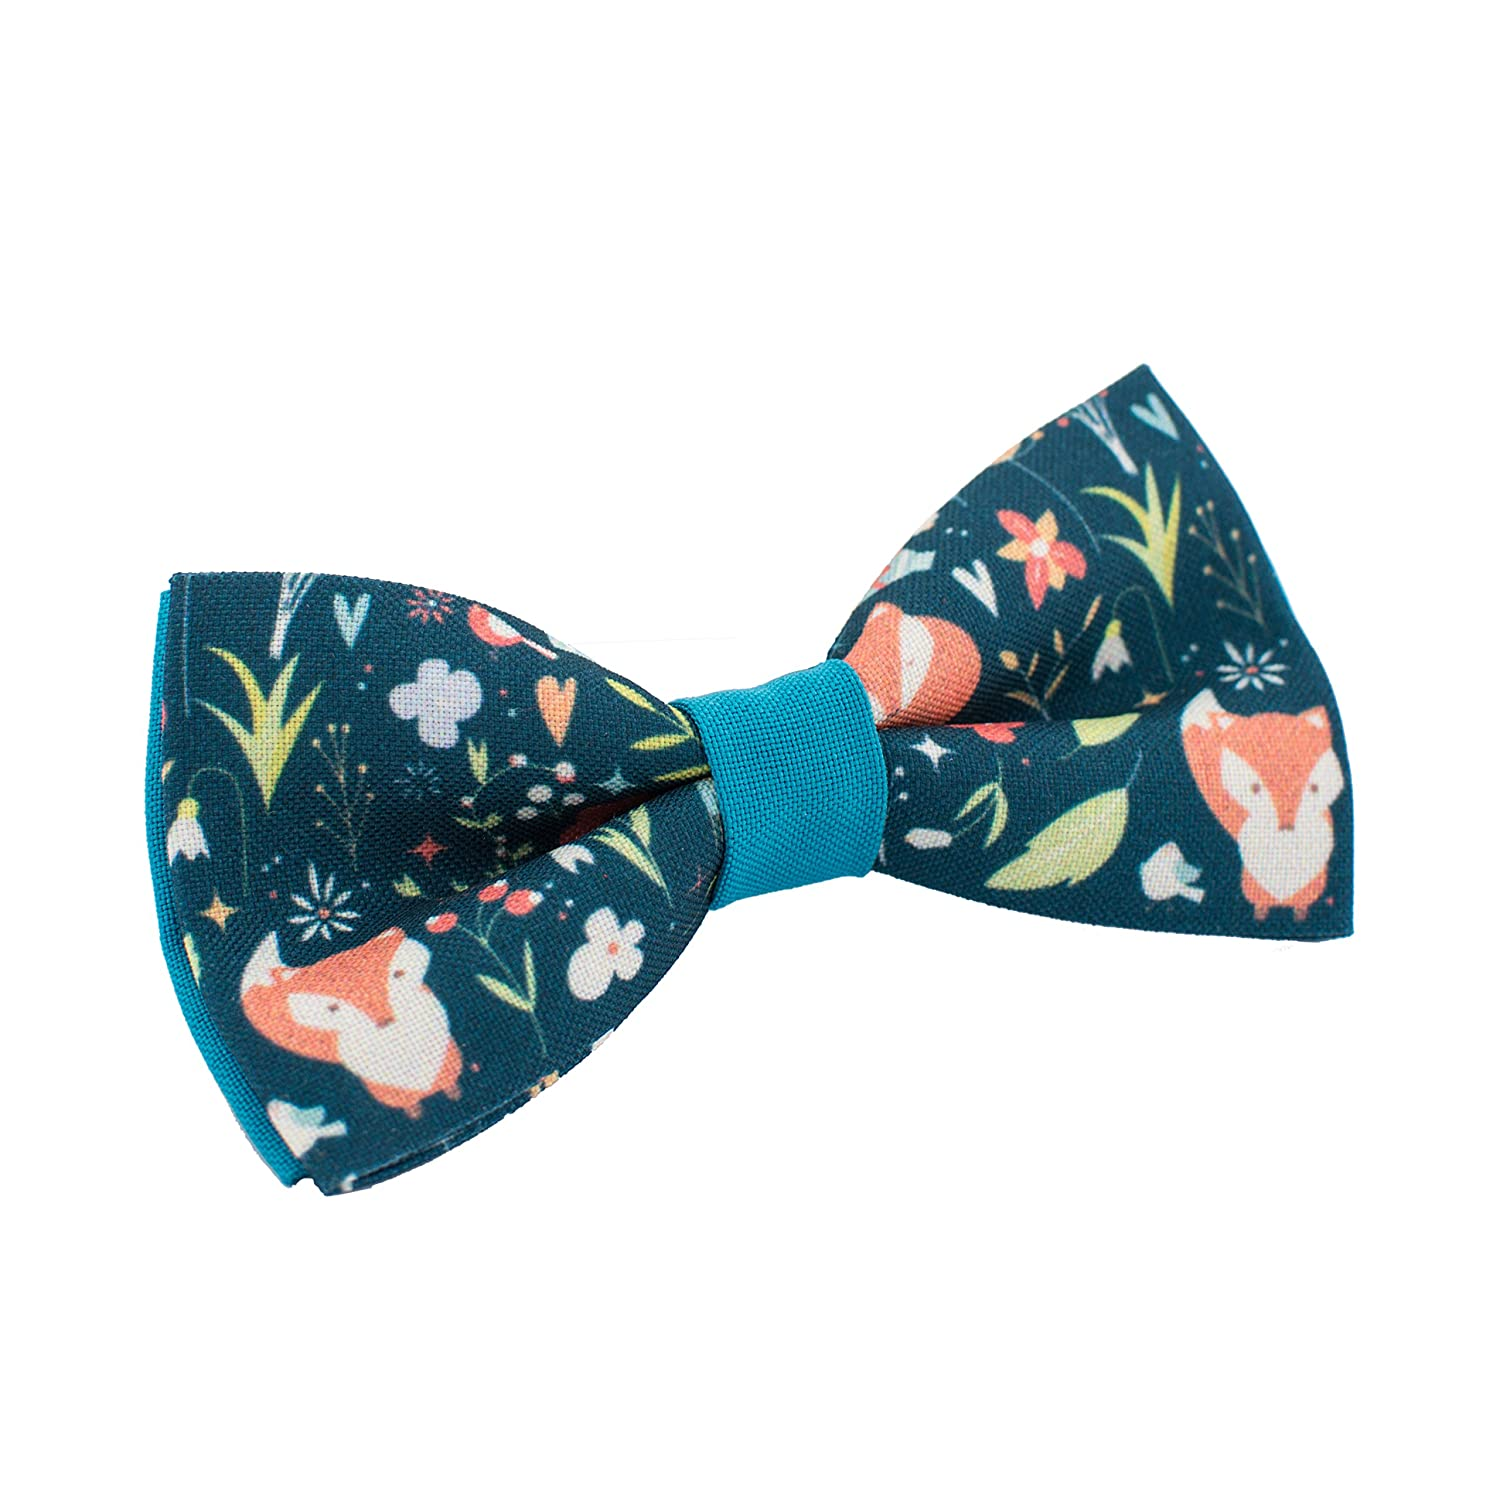 Bow Tie House Fox bow tie blue gabardine material unisex pre-tied pattern